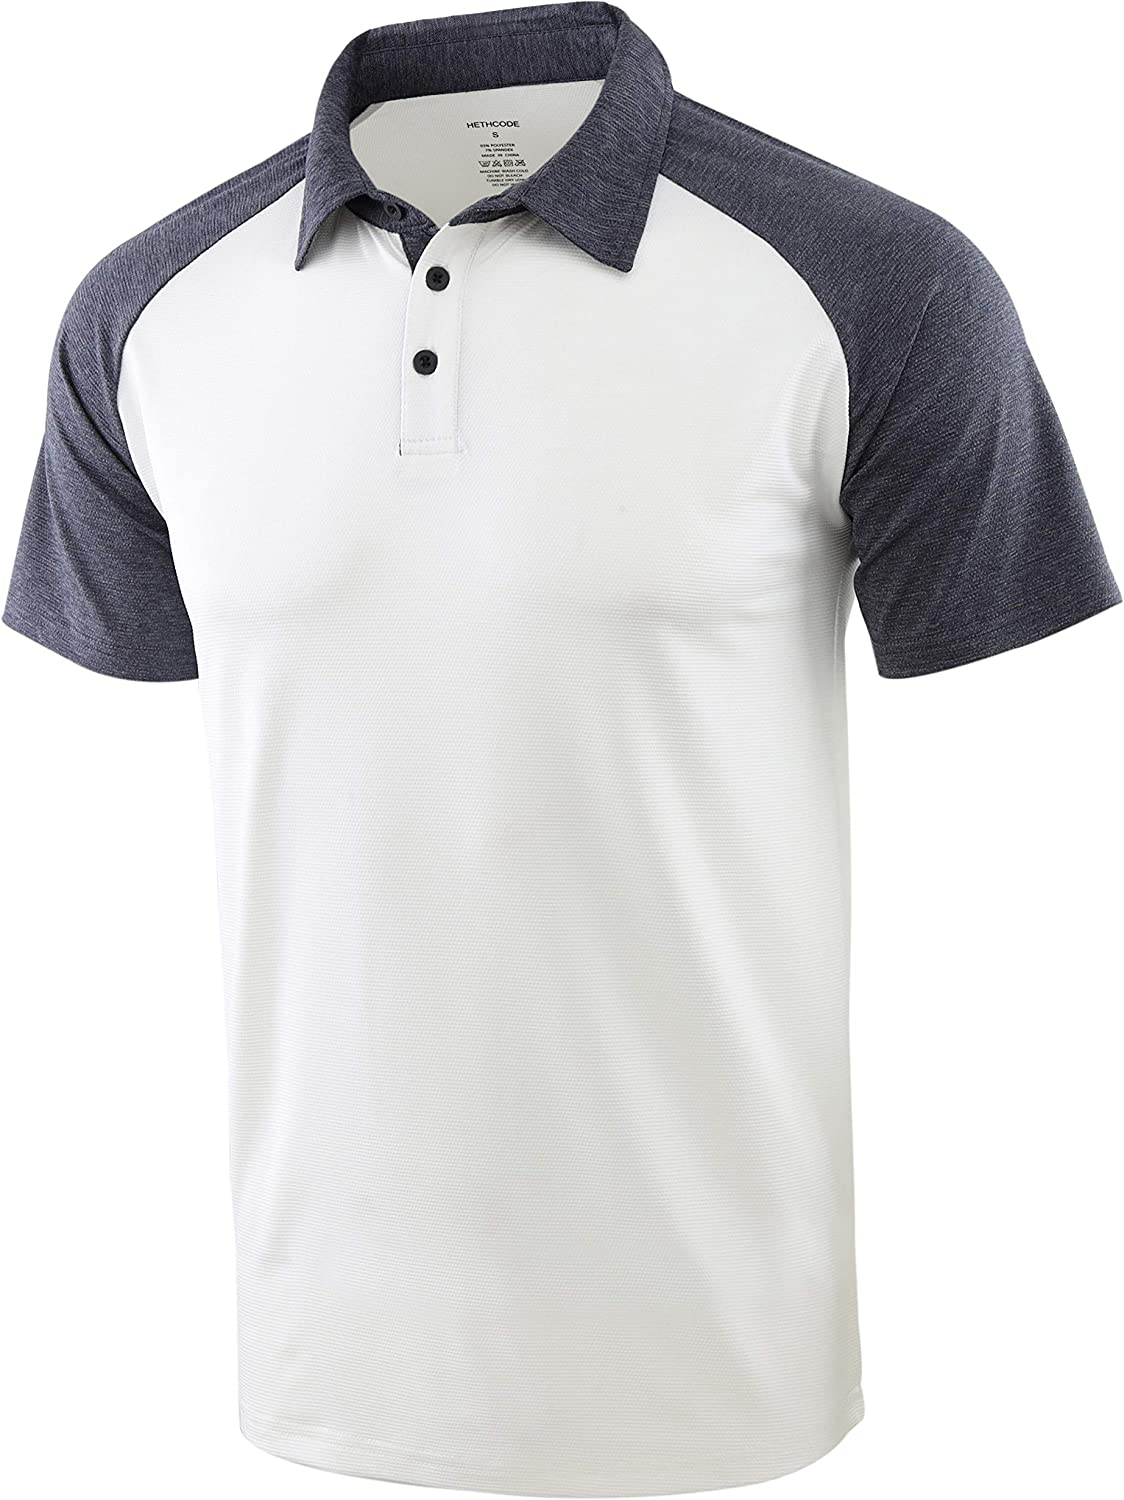 HETHCODE Sales results No. 1 Men's Quick Dry Short National uniform free shipping Sports Breathable Sleeve Athletic